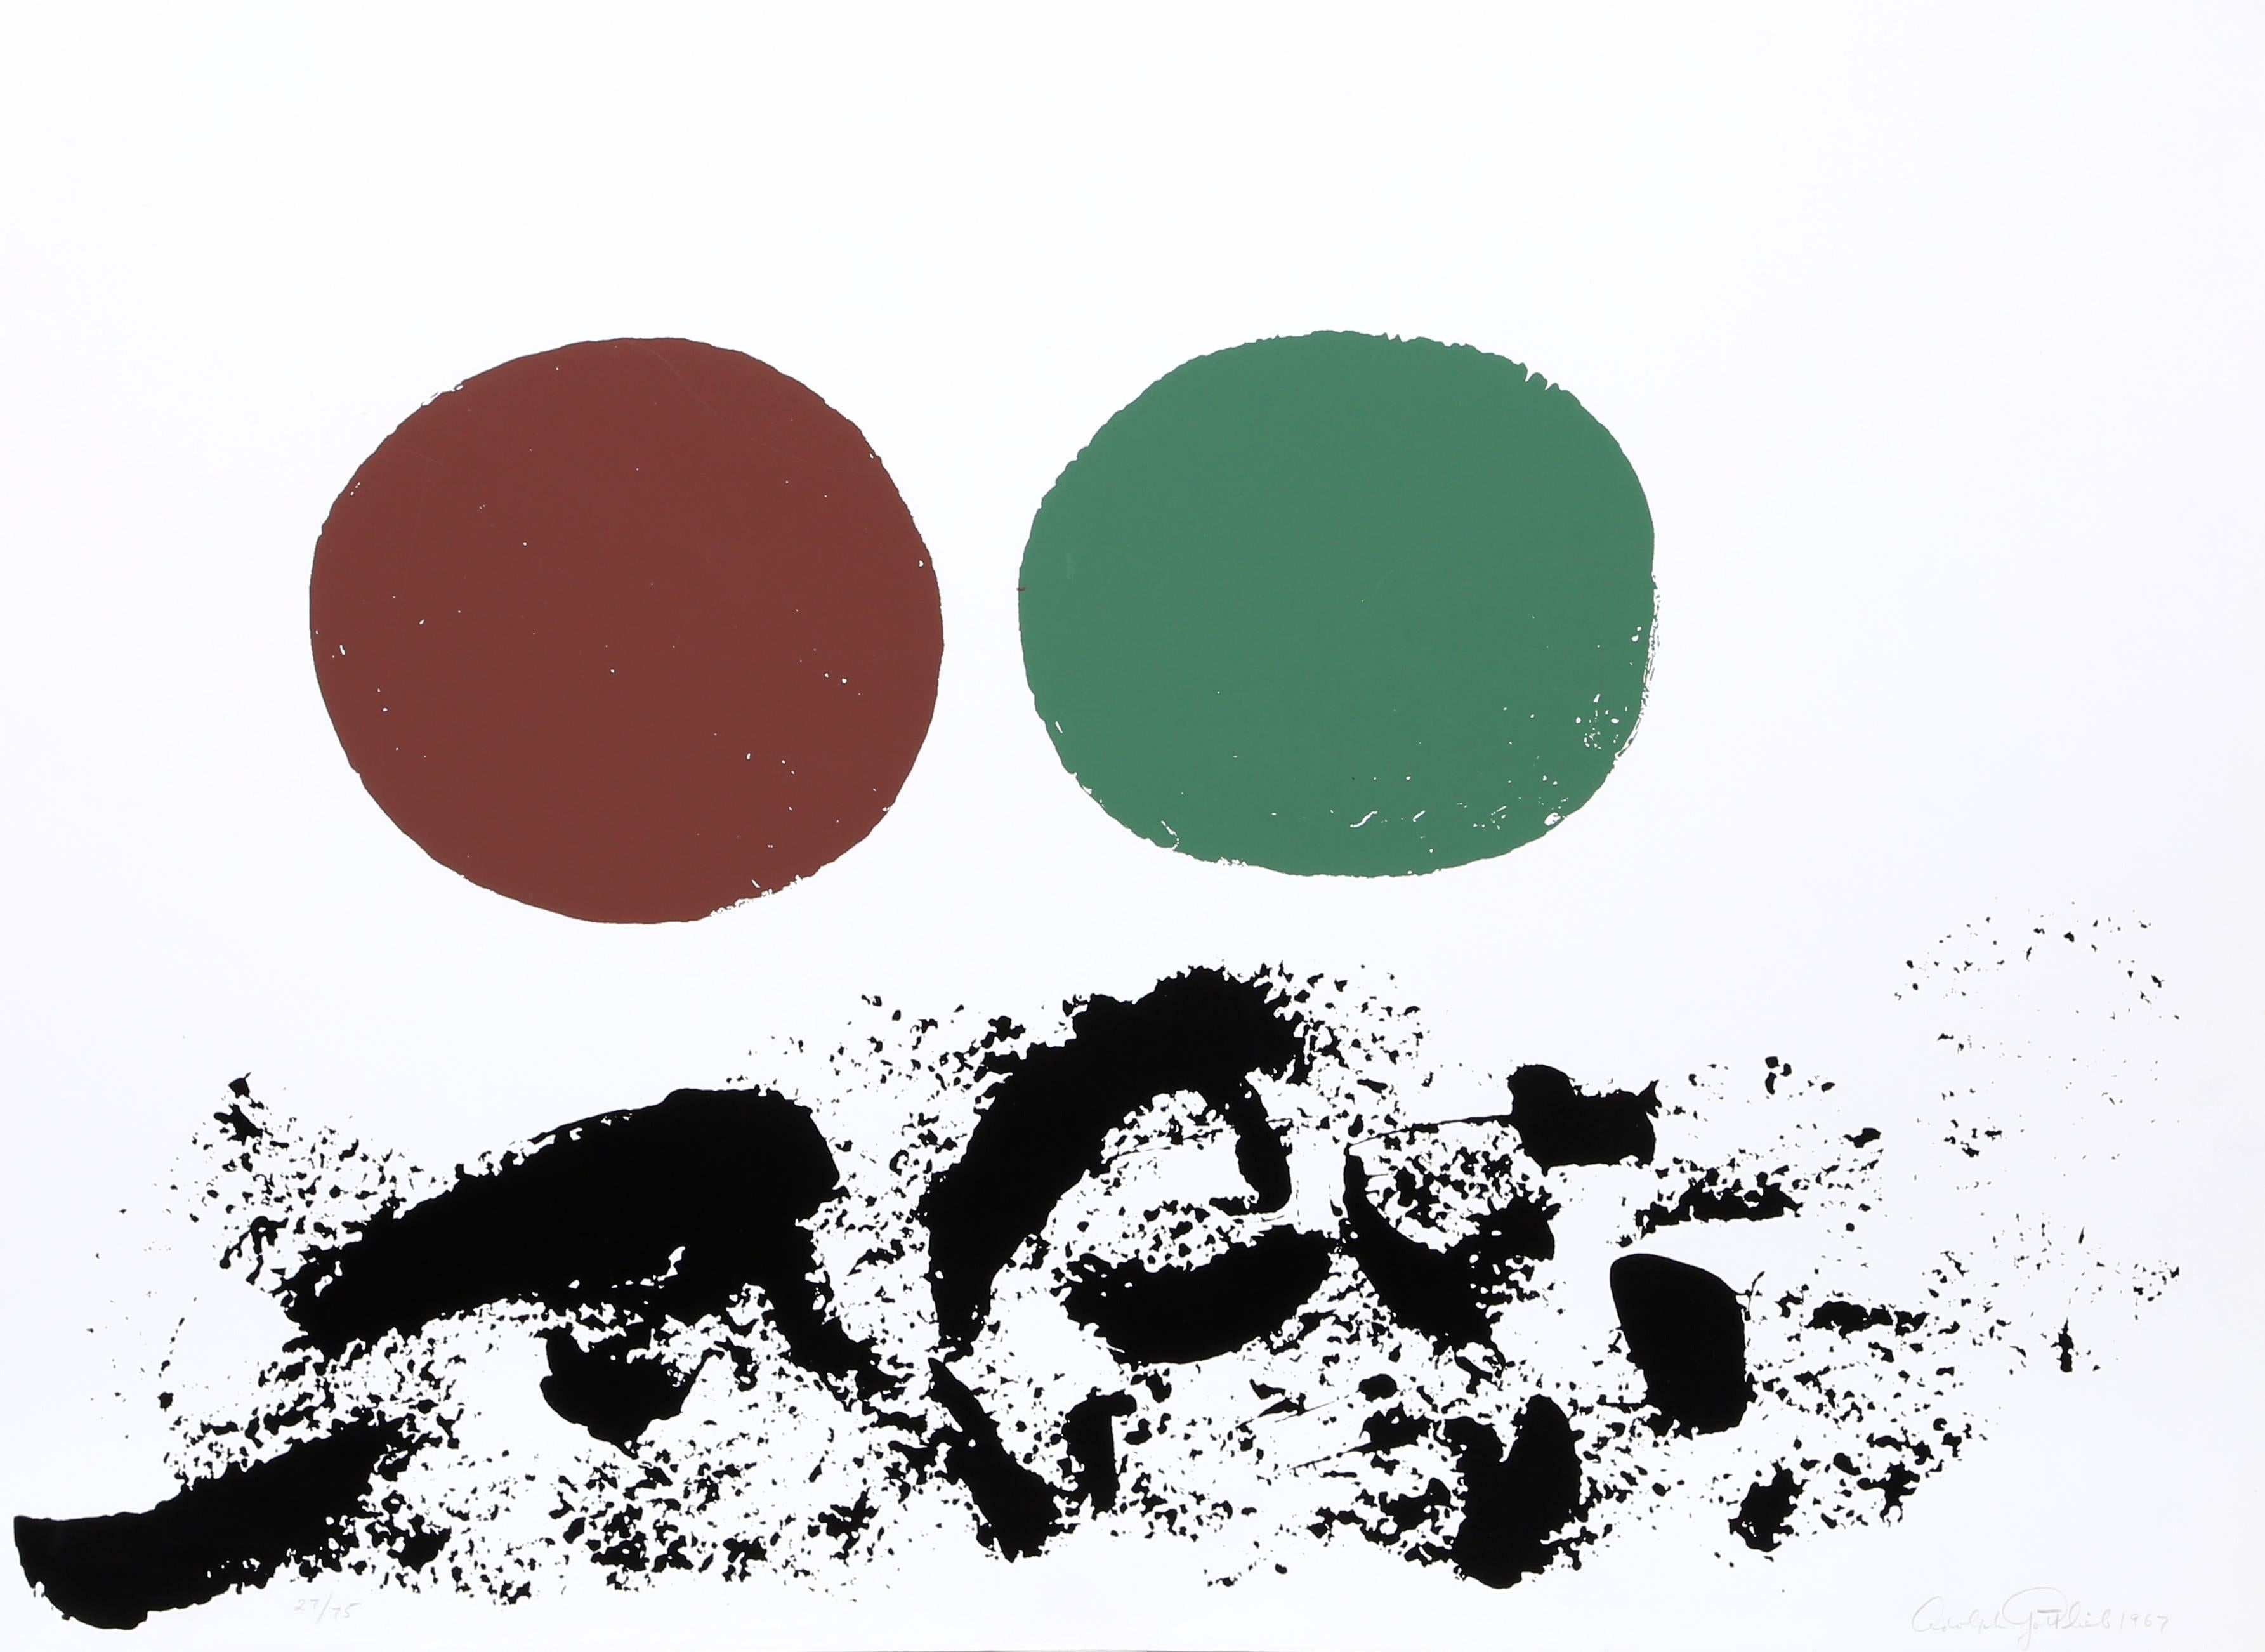 Flurry, Abstract Expressionist Sillkscreen by Adolph Gottlieb 1967